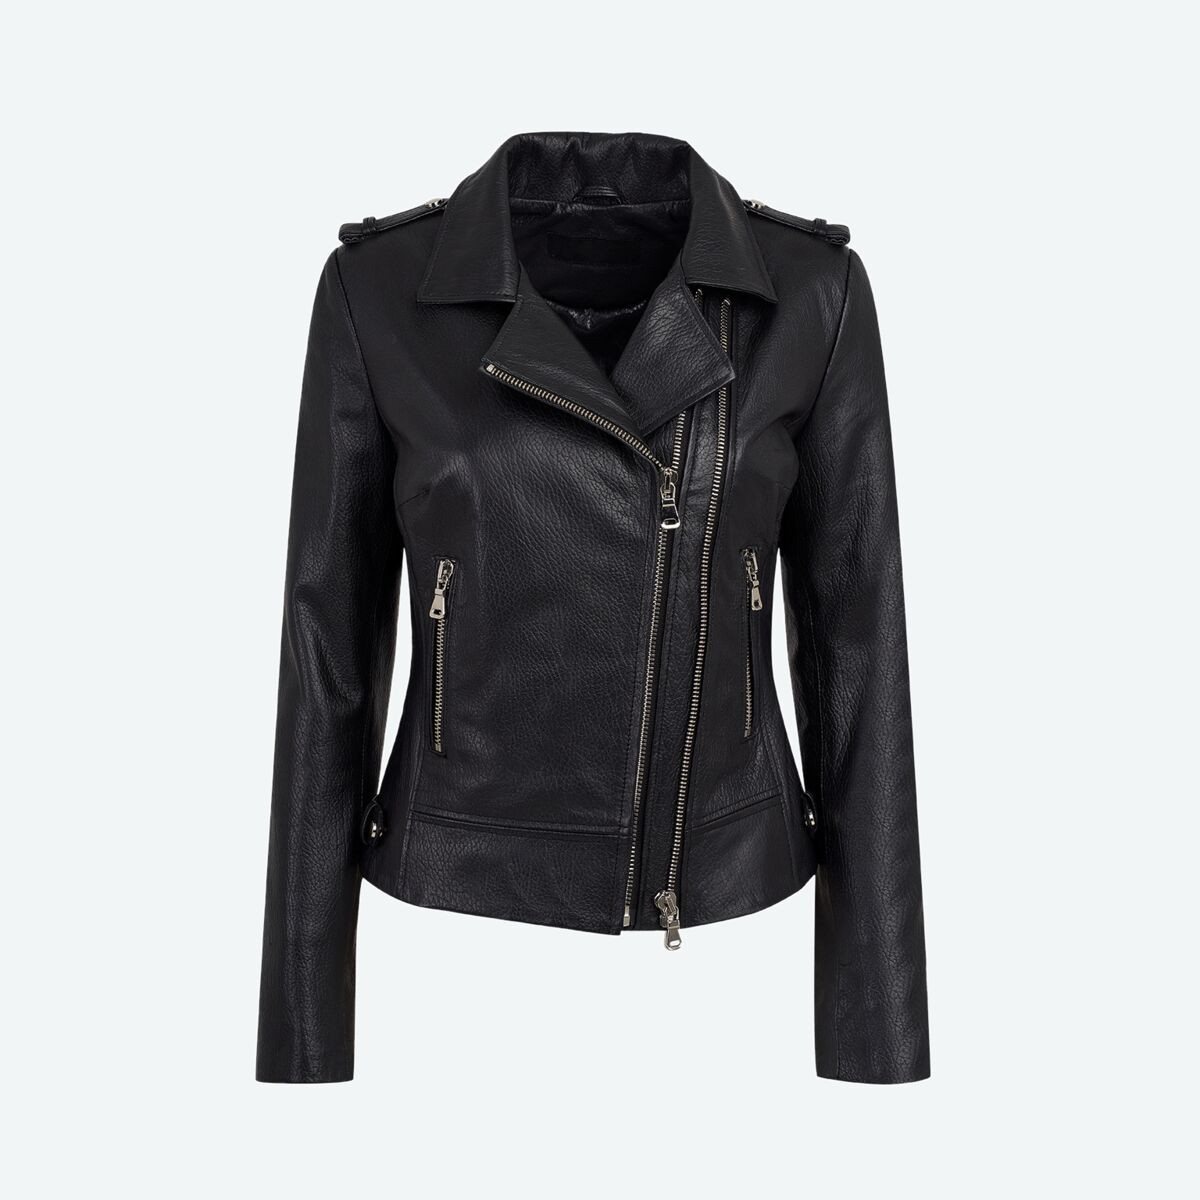 Women's Leather Biker Jacket - Black